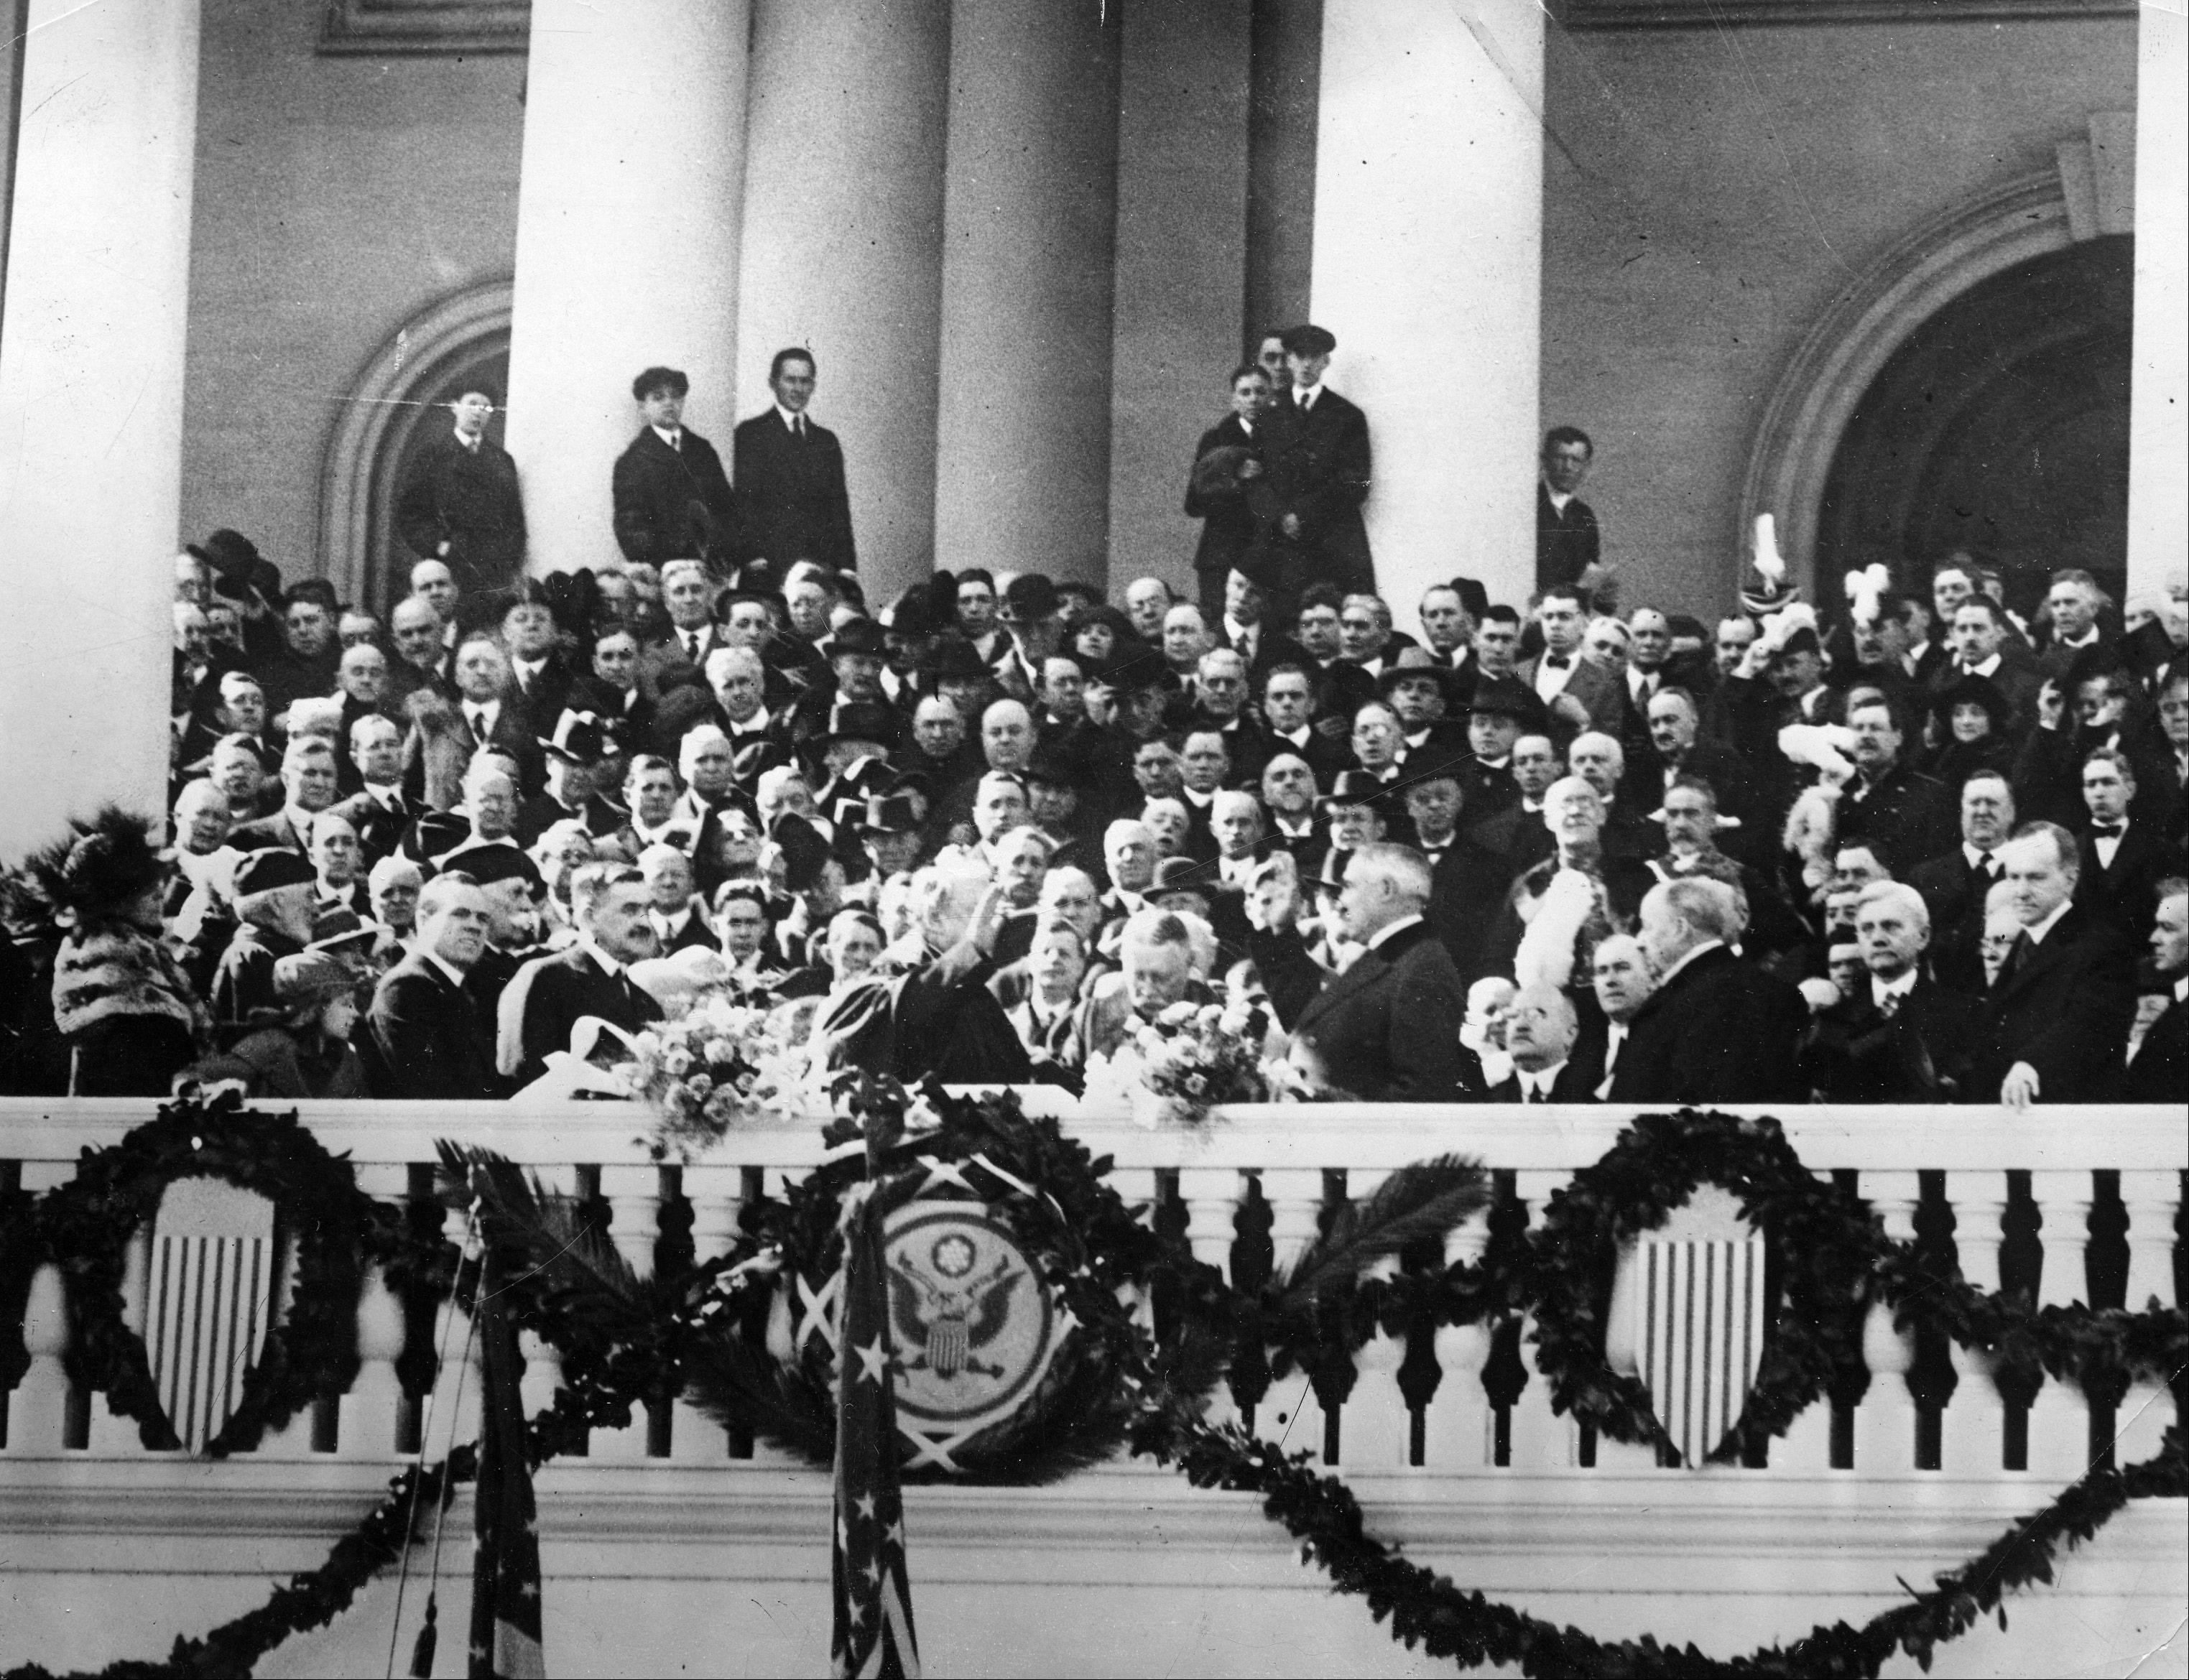 Warren G. Harding, center right, takes the oath of office administered by Chief Justice Edward D. White on the East Portico of the Capitol building in Washington, D.C., March 4, 1921. Harding is sworn in as the 29th president of the United States.